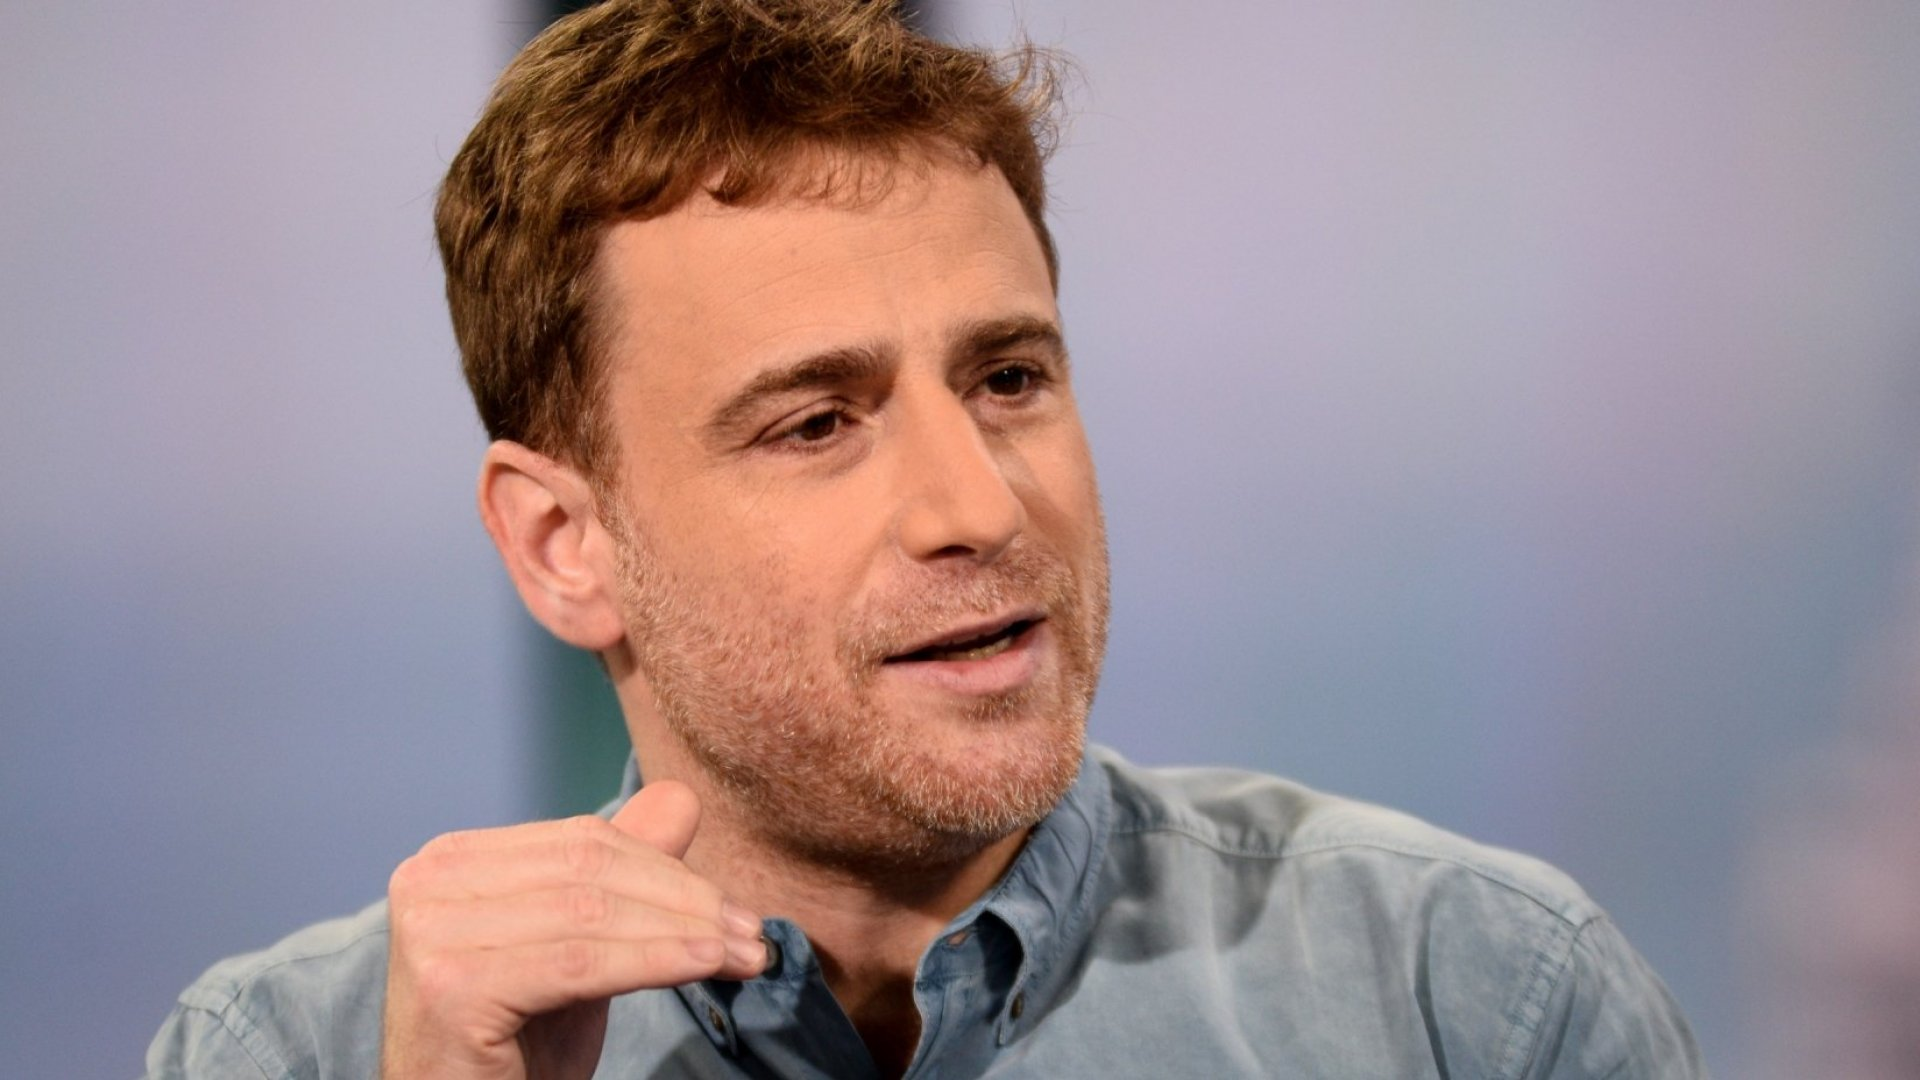 This Is the 1 Thing That Worries Slack CEO Stewart Butterfield the Most